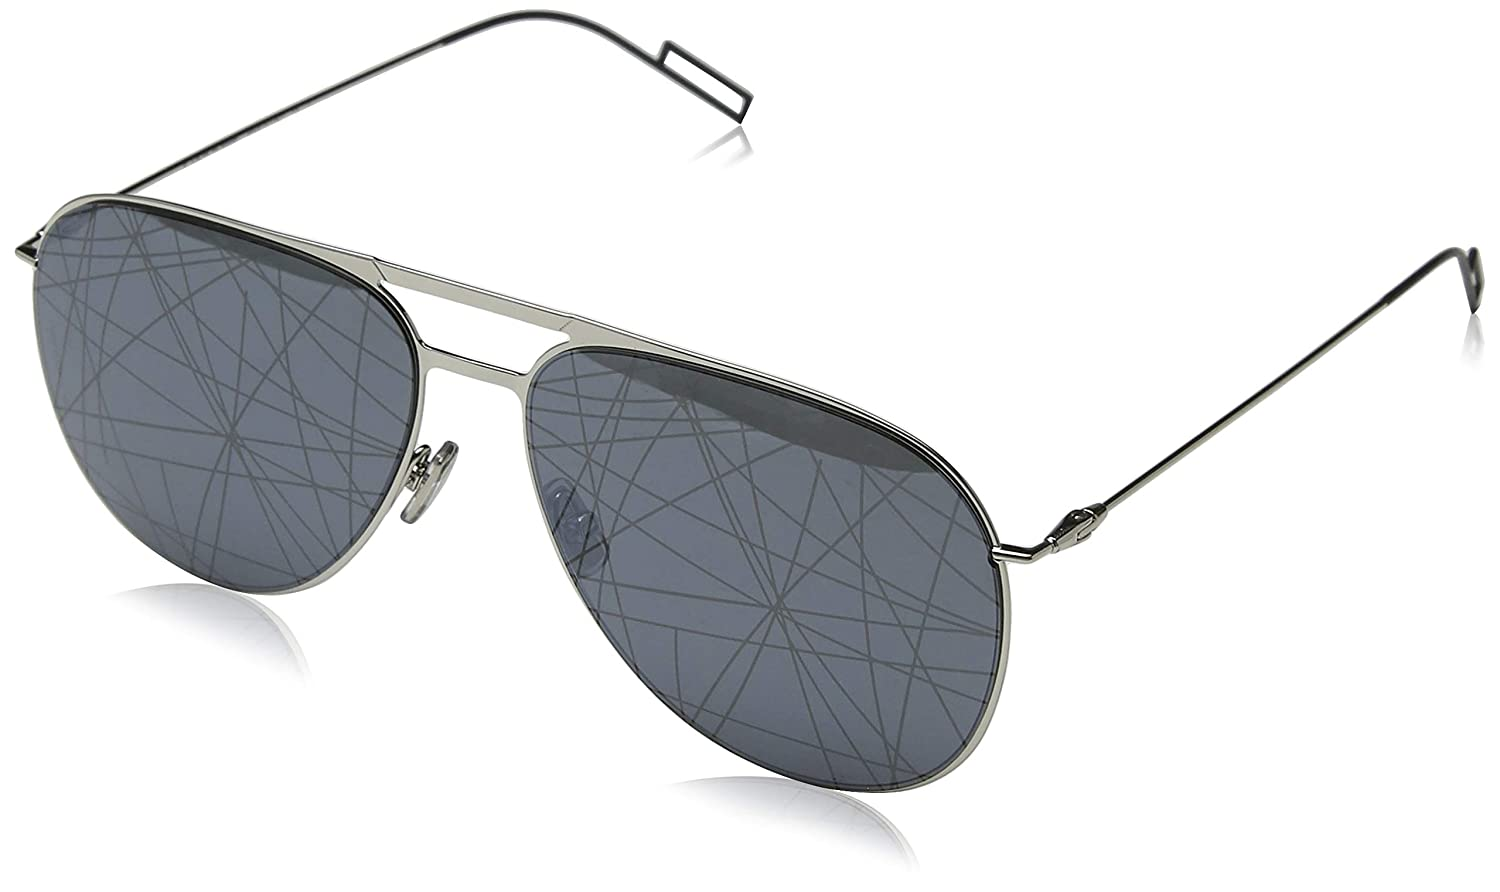 82f6612267 Amazon.com  Dior Homme 0205S 84JMD Sunglasses  Clothing